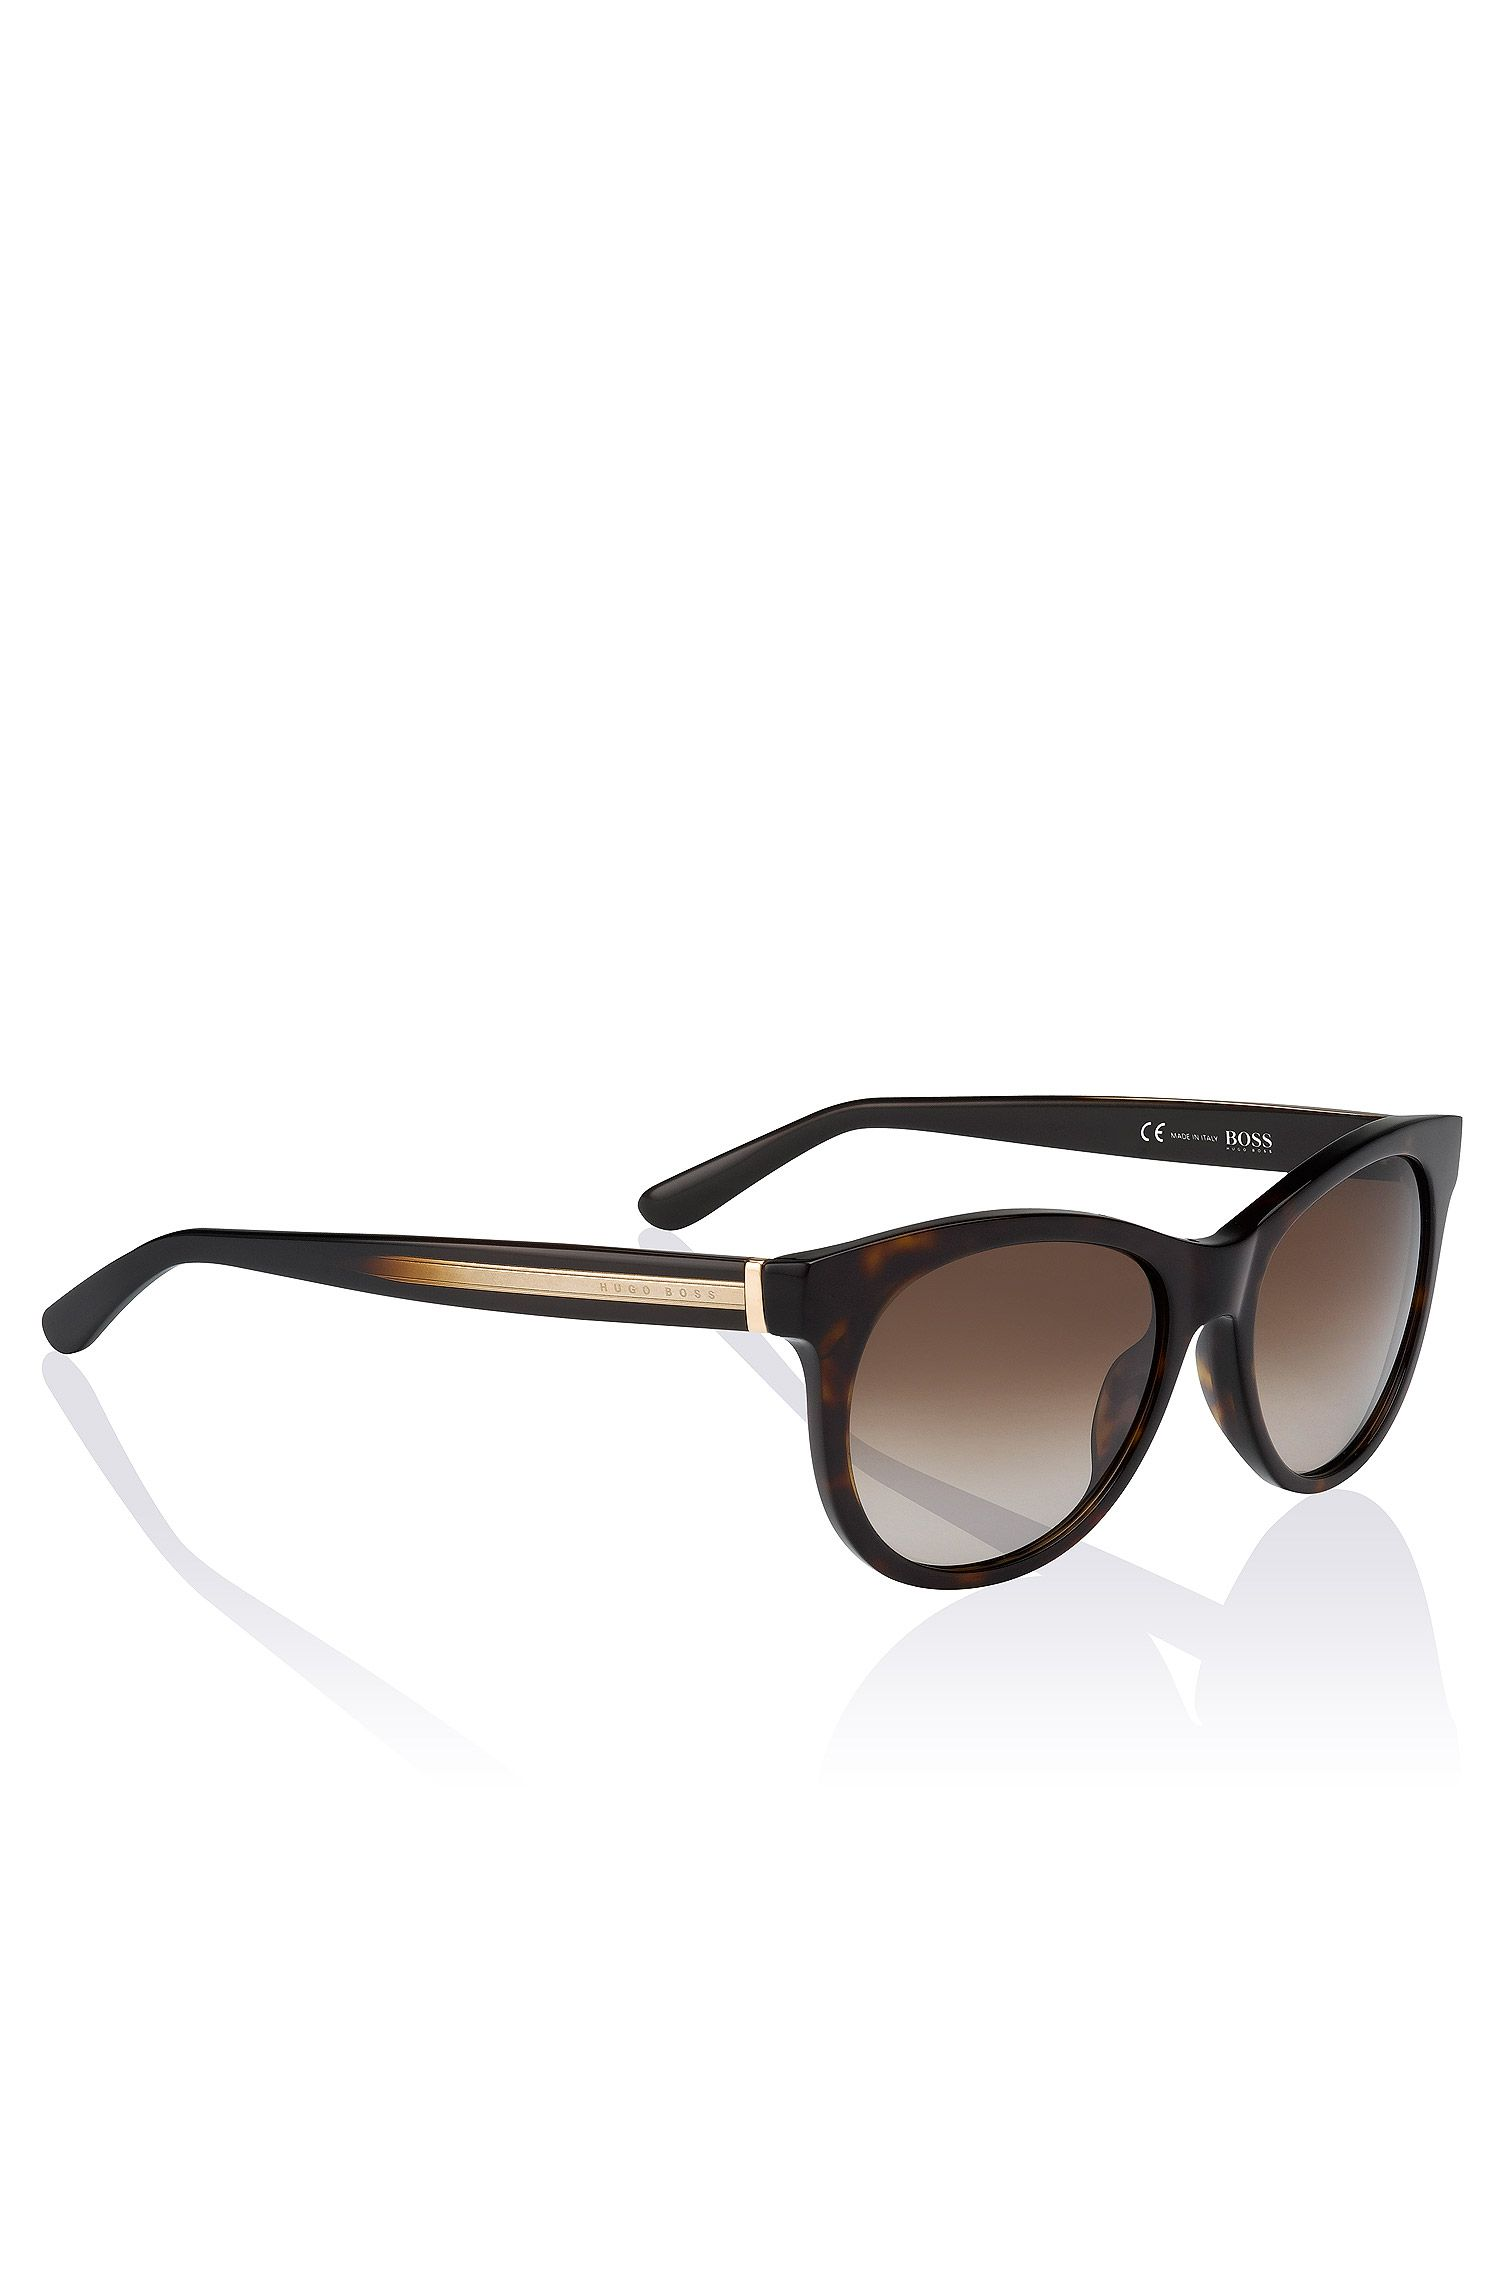 Cat-Eye-Sonnenbrille ´BO 0611/S`